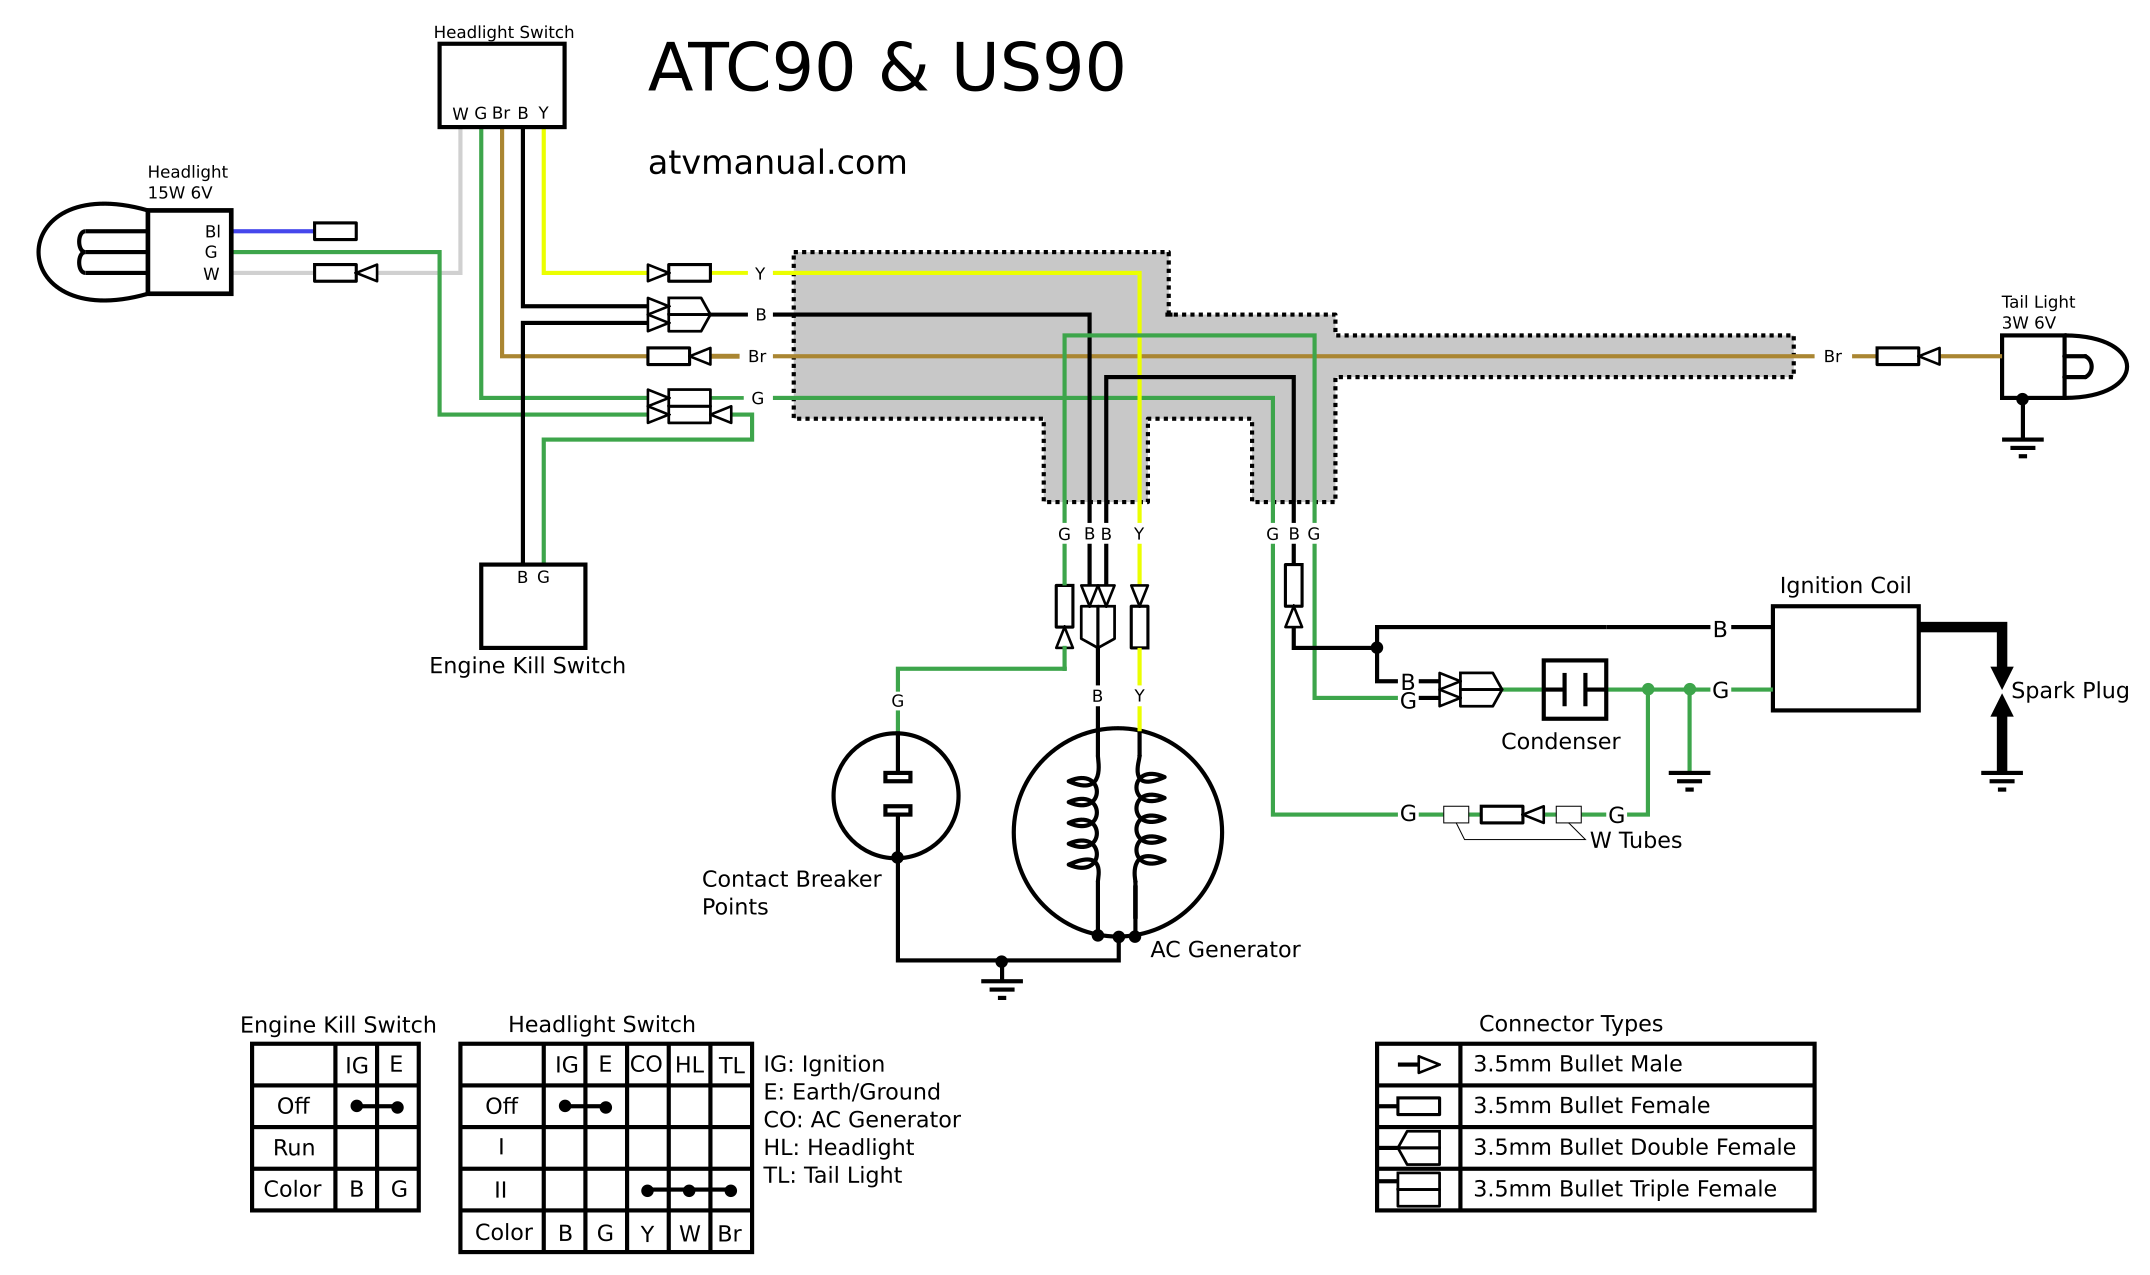 ATC90 & US90 Wire Diagram